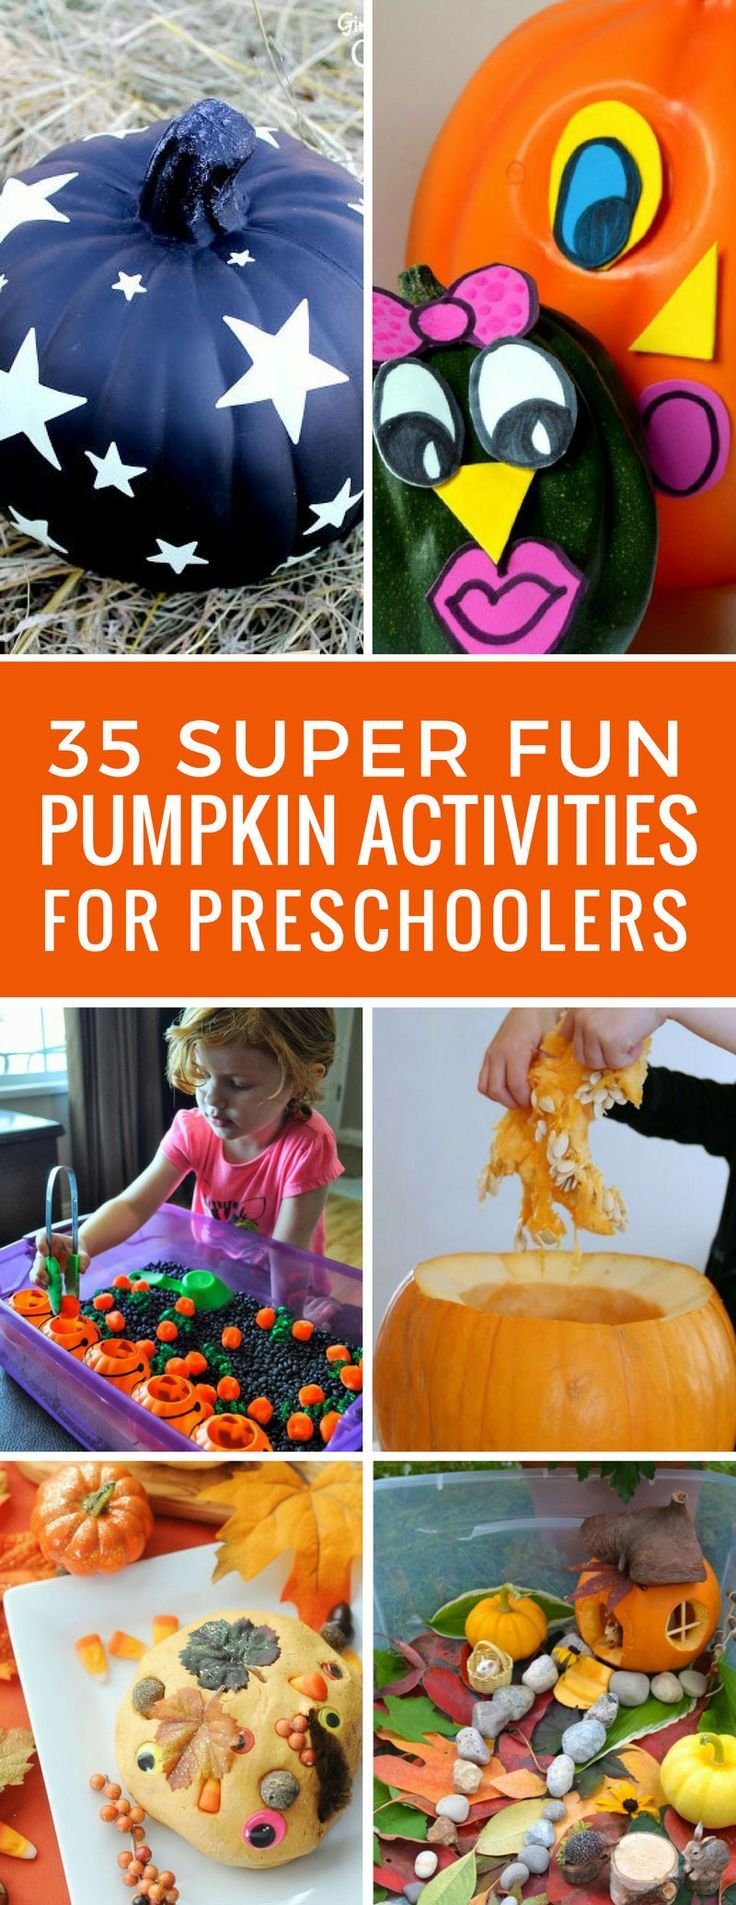 Halloween party ideas for preschoolers 447 best fun with kids images on pinterest birthday party ideas